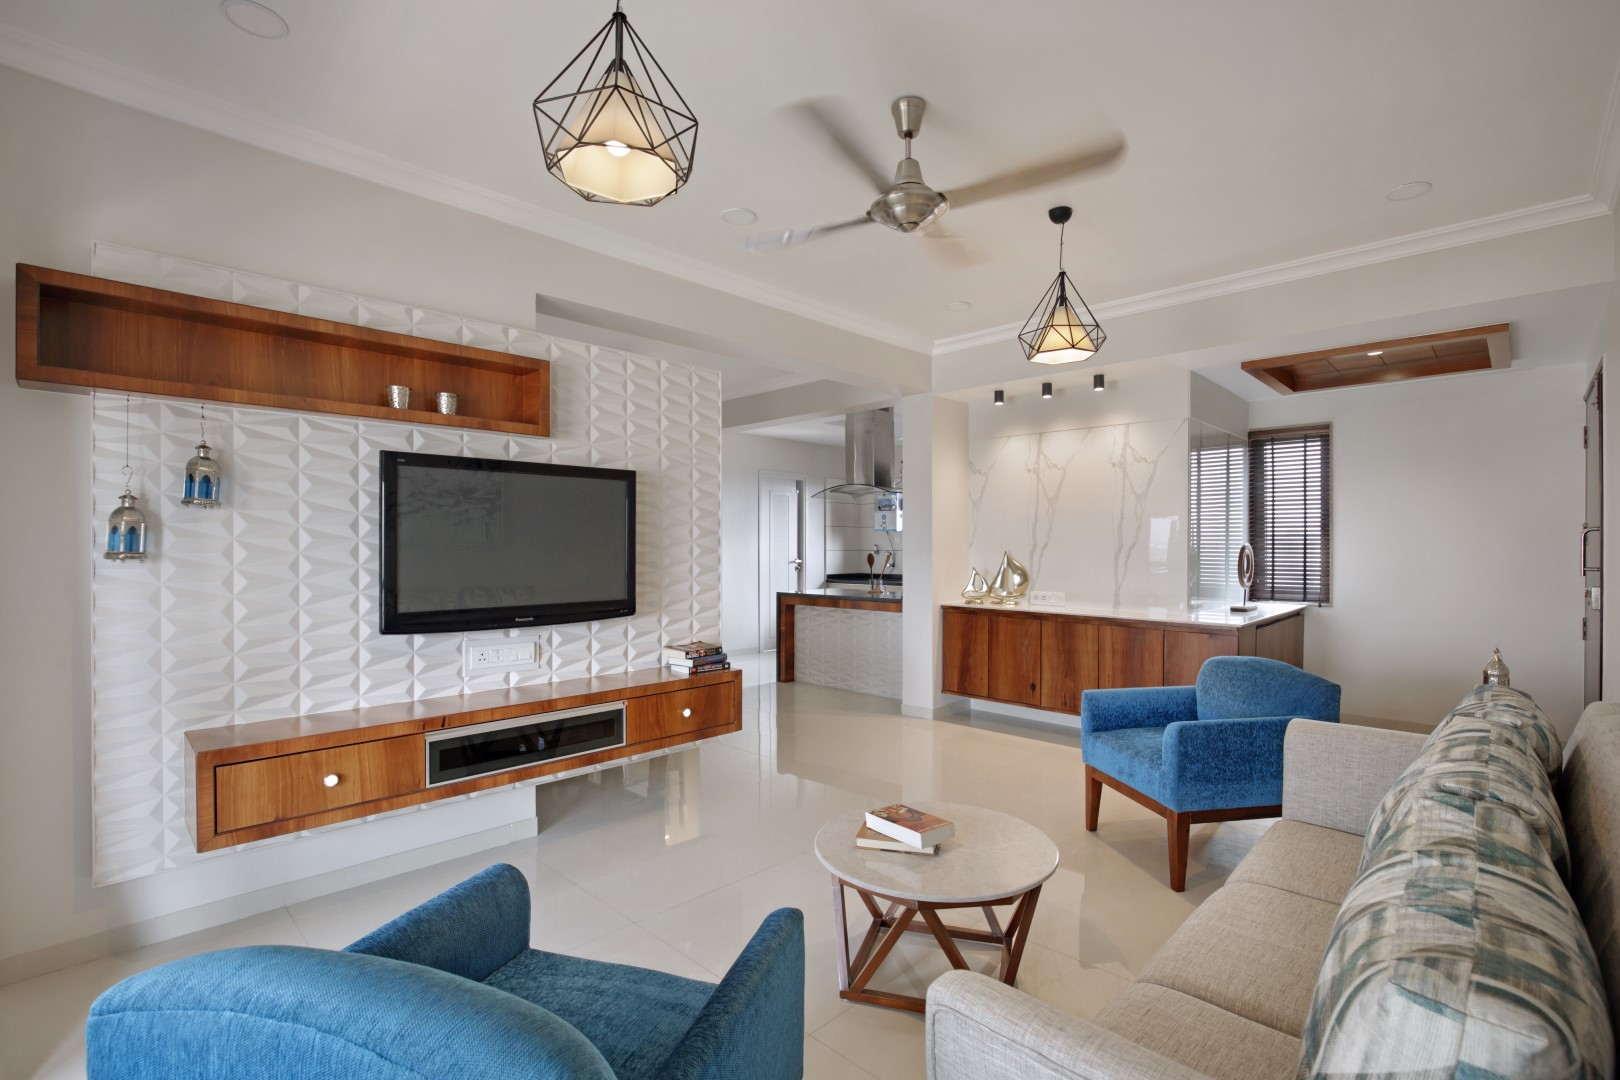 2 bhk interior design studio 7 designs the architects for Interior design studio